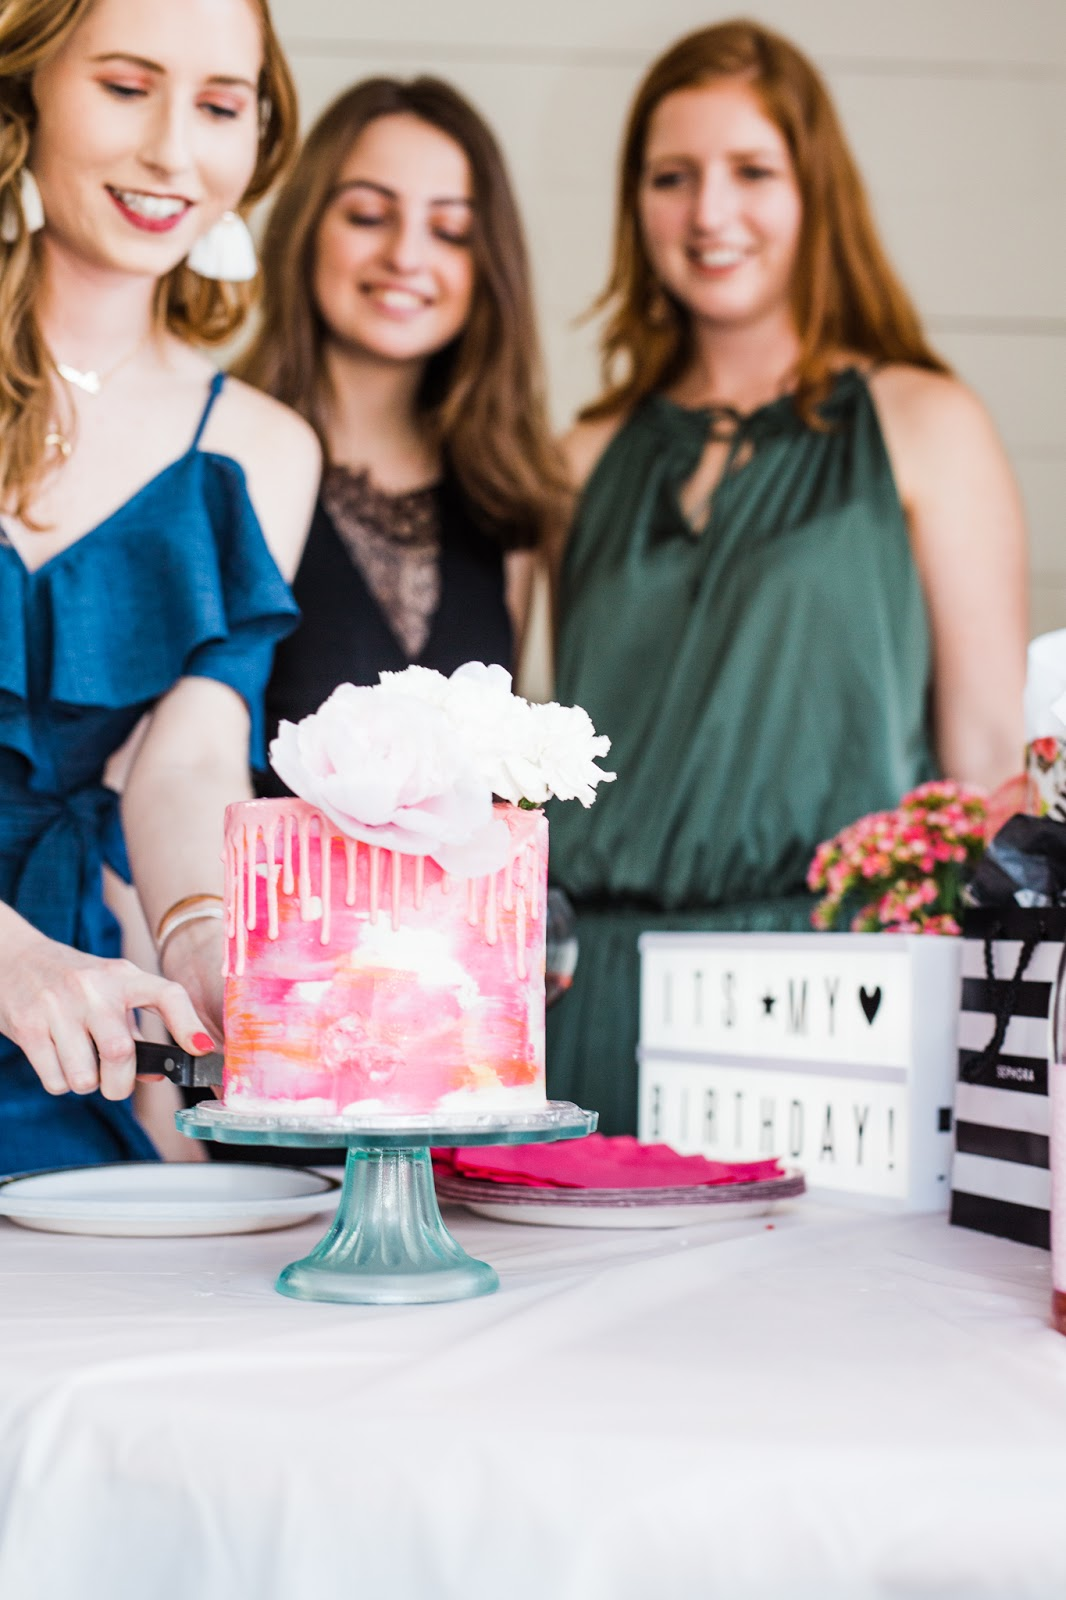 the wandering whisk bakeshop cutting the cake